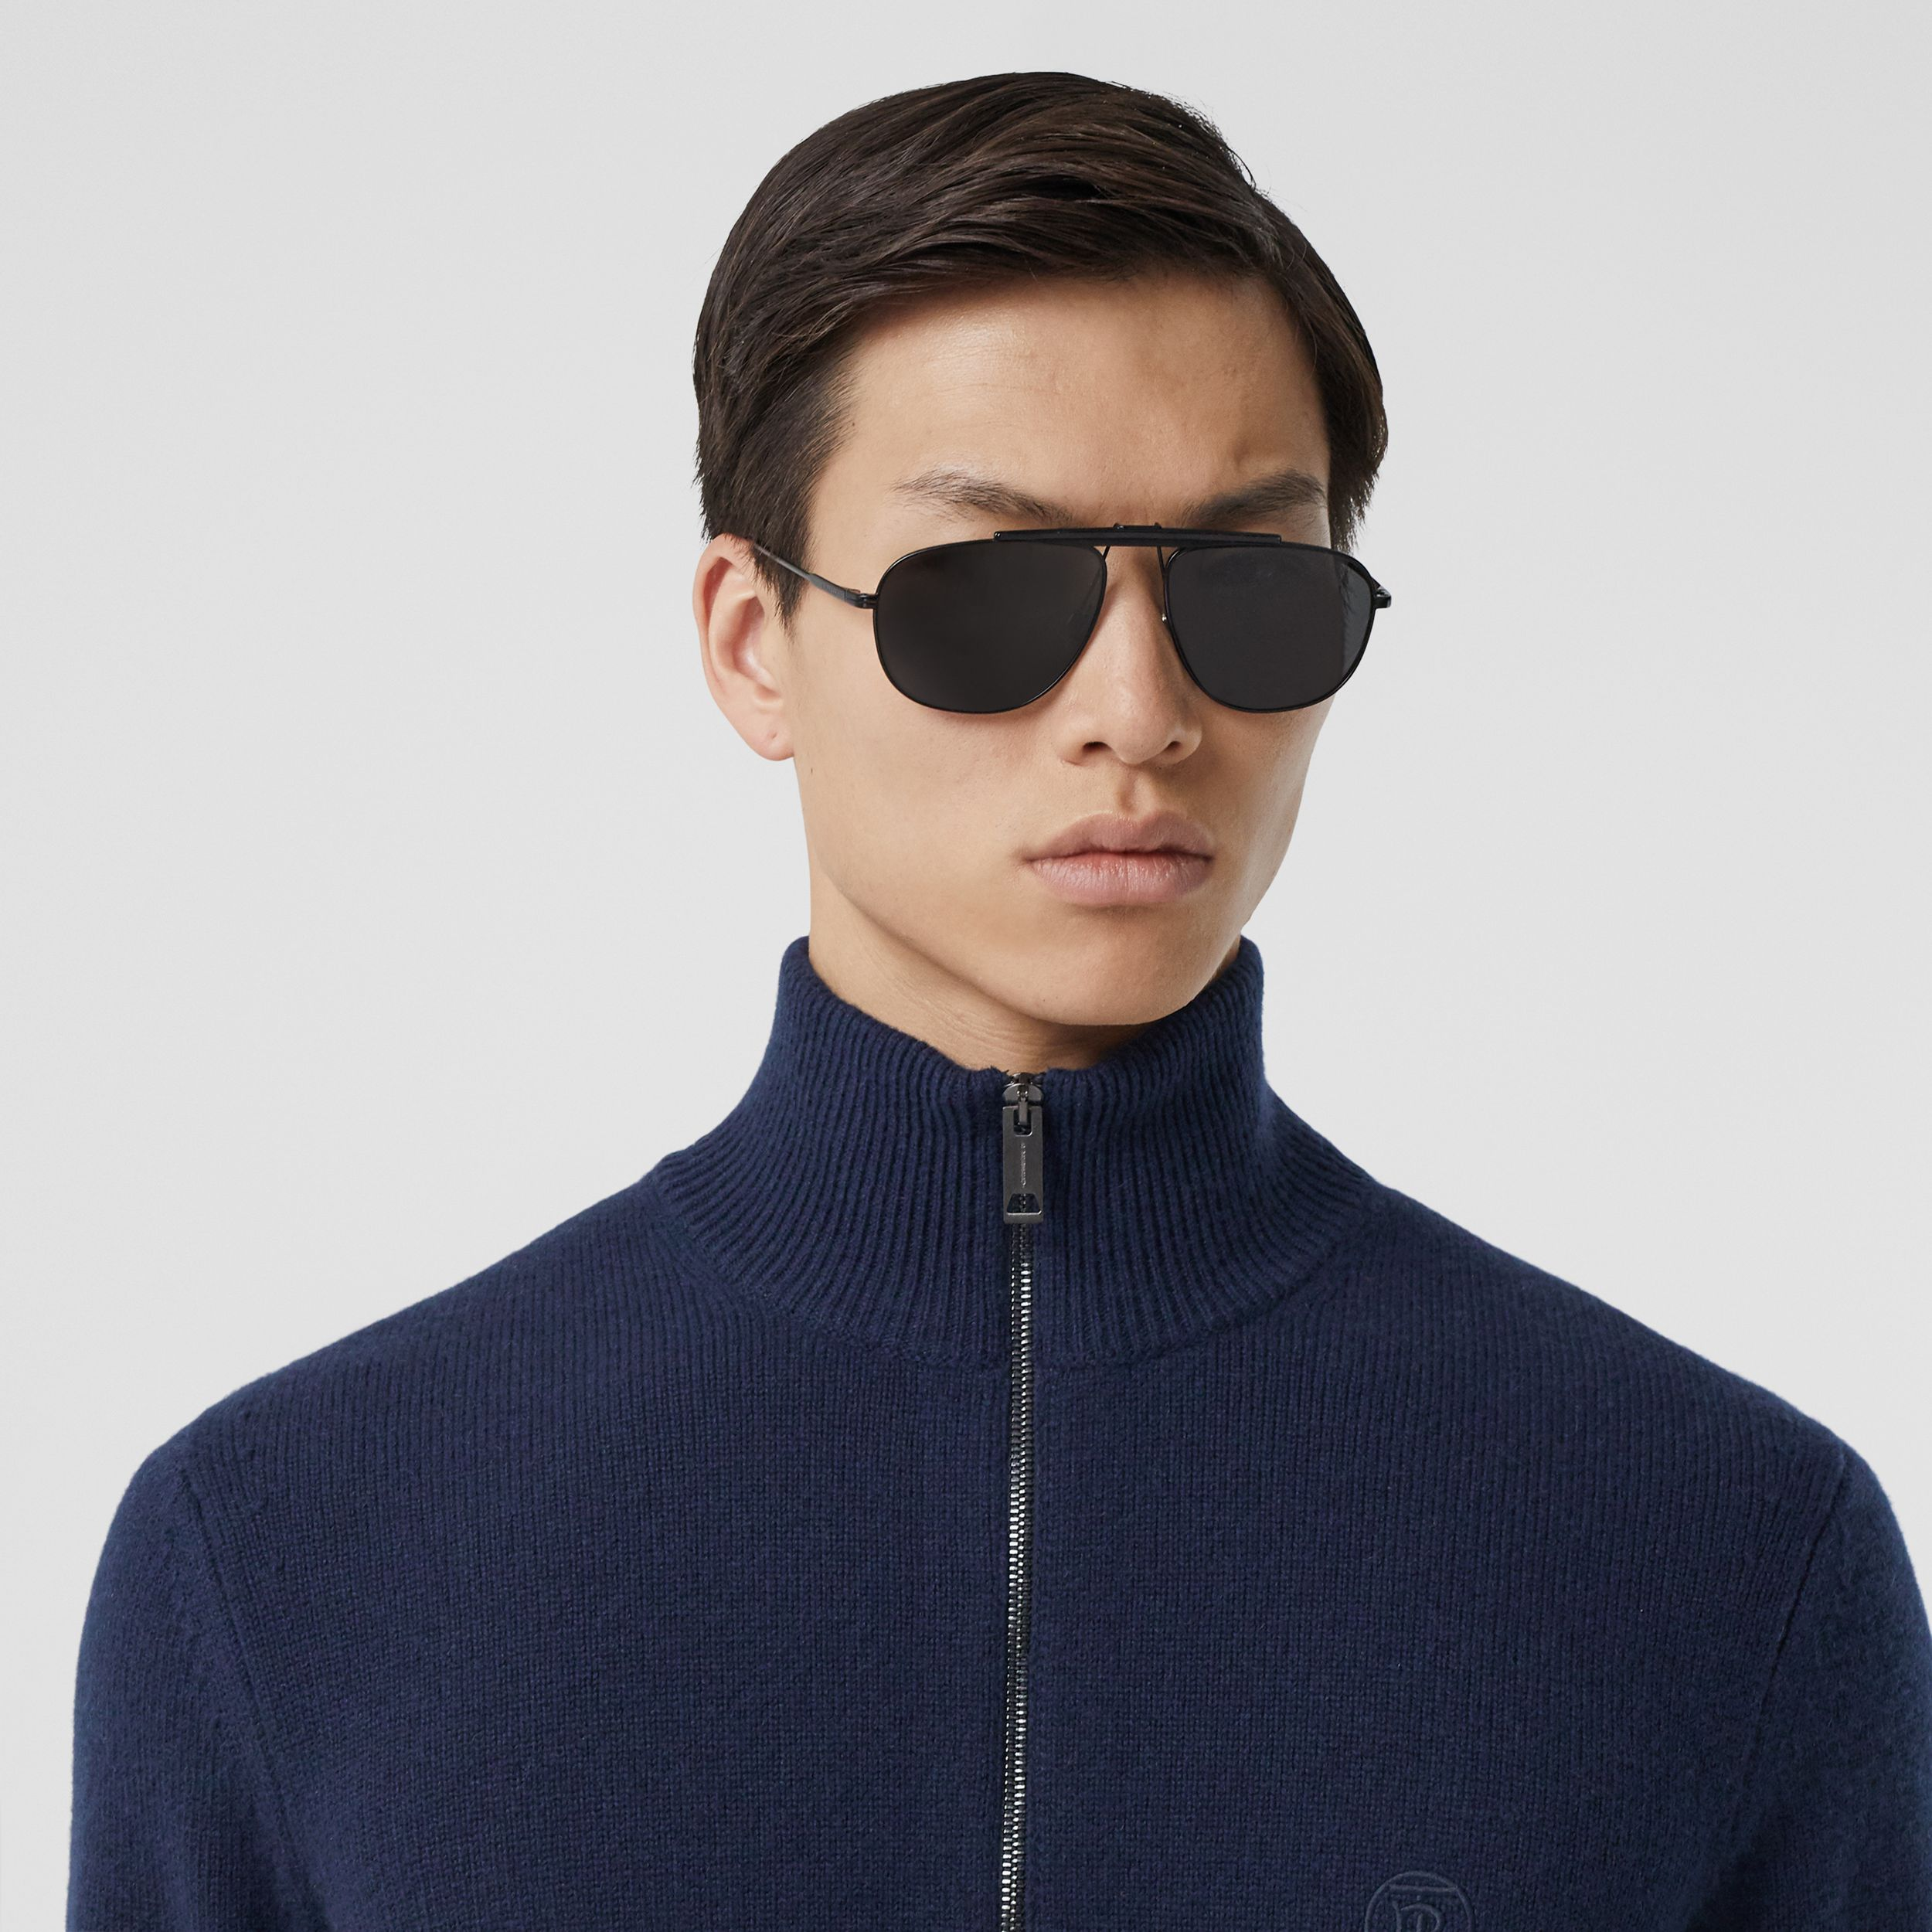 Monogram Motif Cashmere Funnel Neck Sweater in Navy - Men | Burberry United Kingdom - 2